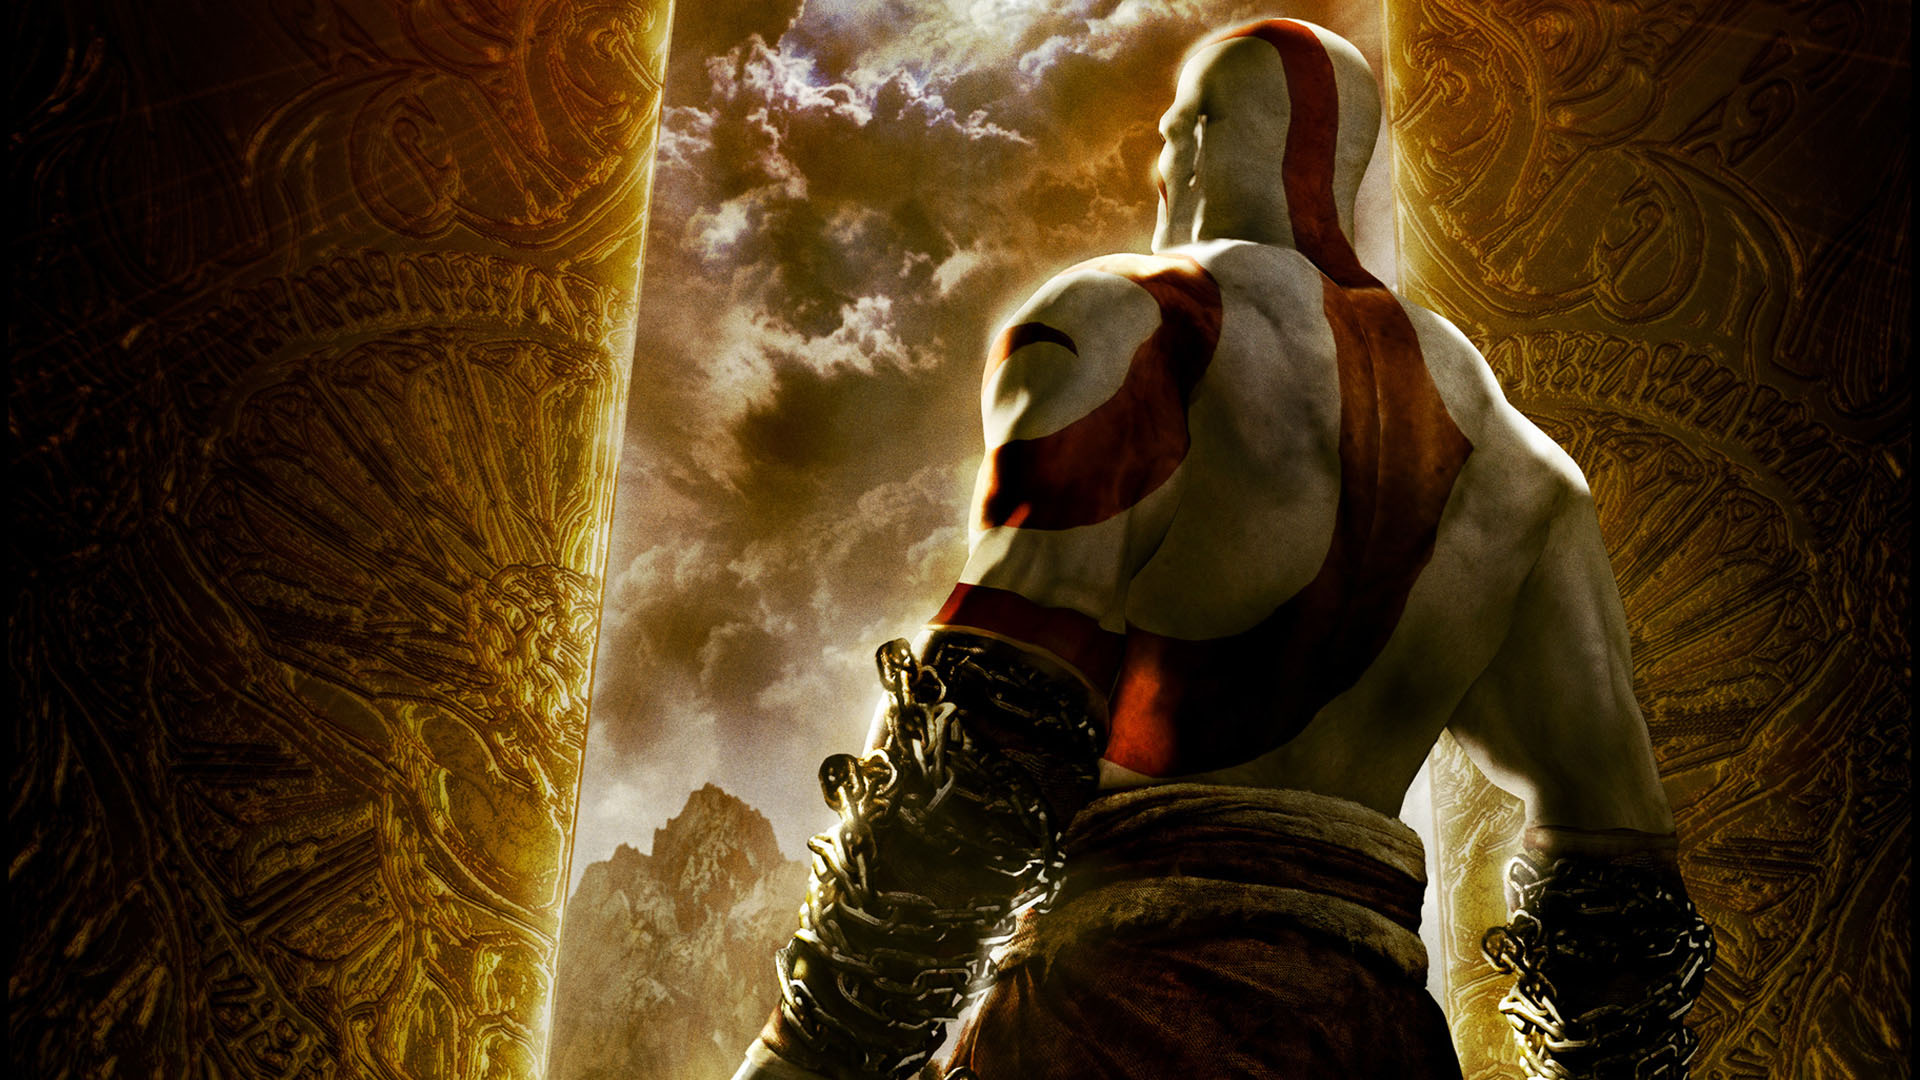 Kratos Looking At Dark Cloudy Skies